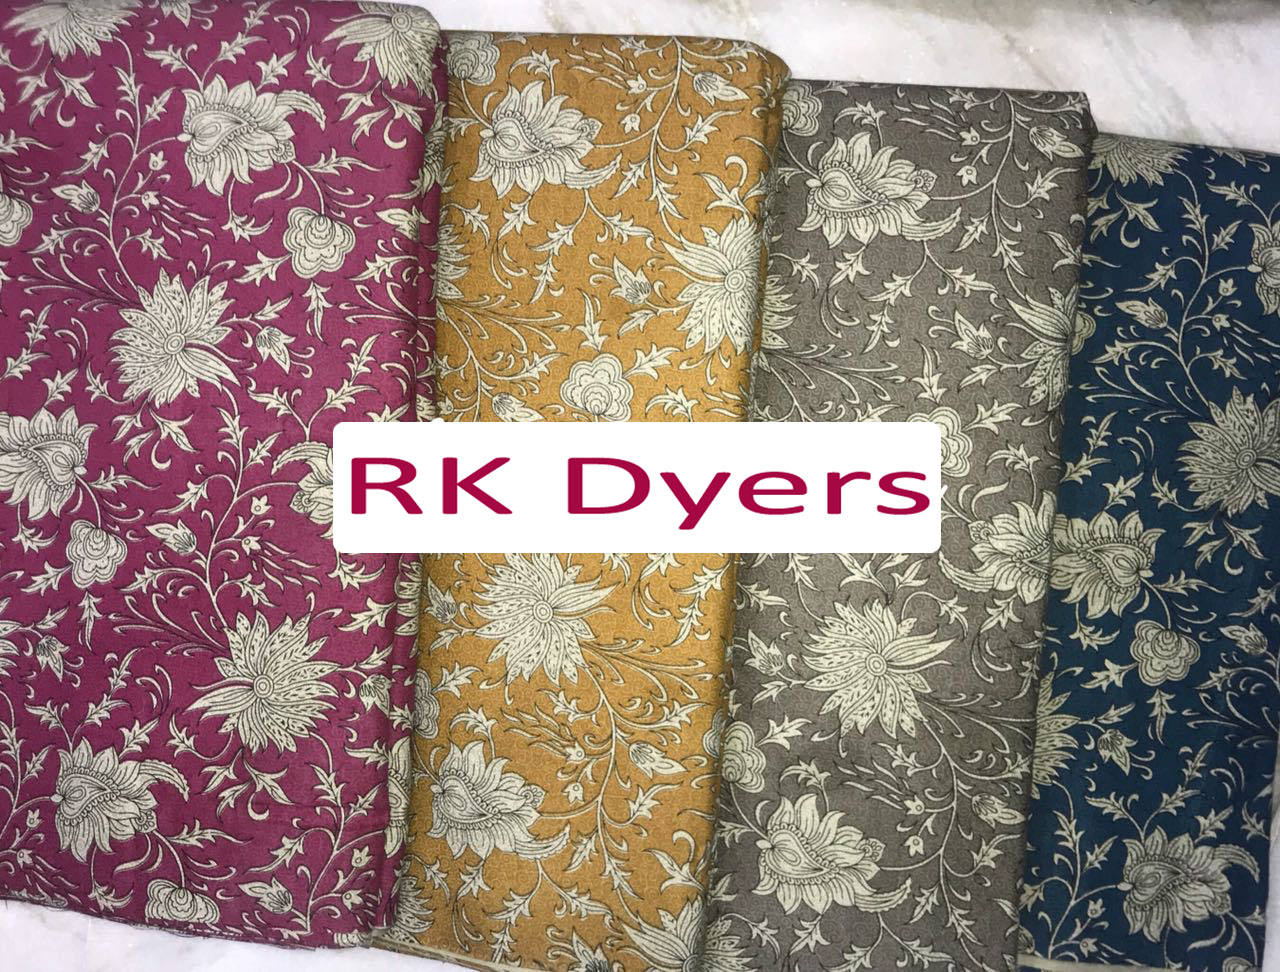 Flower Printed Cotton 40's Fabric